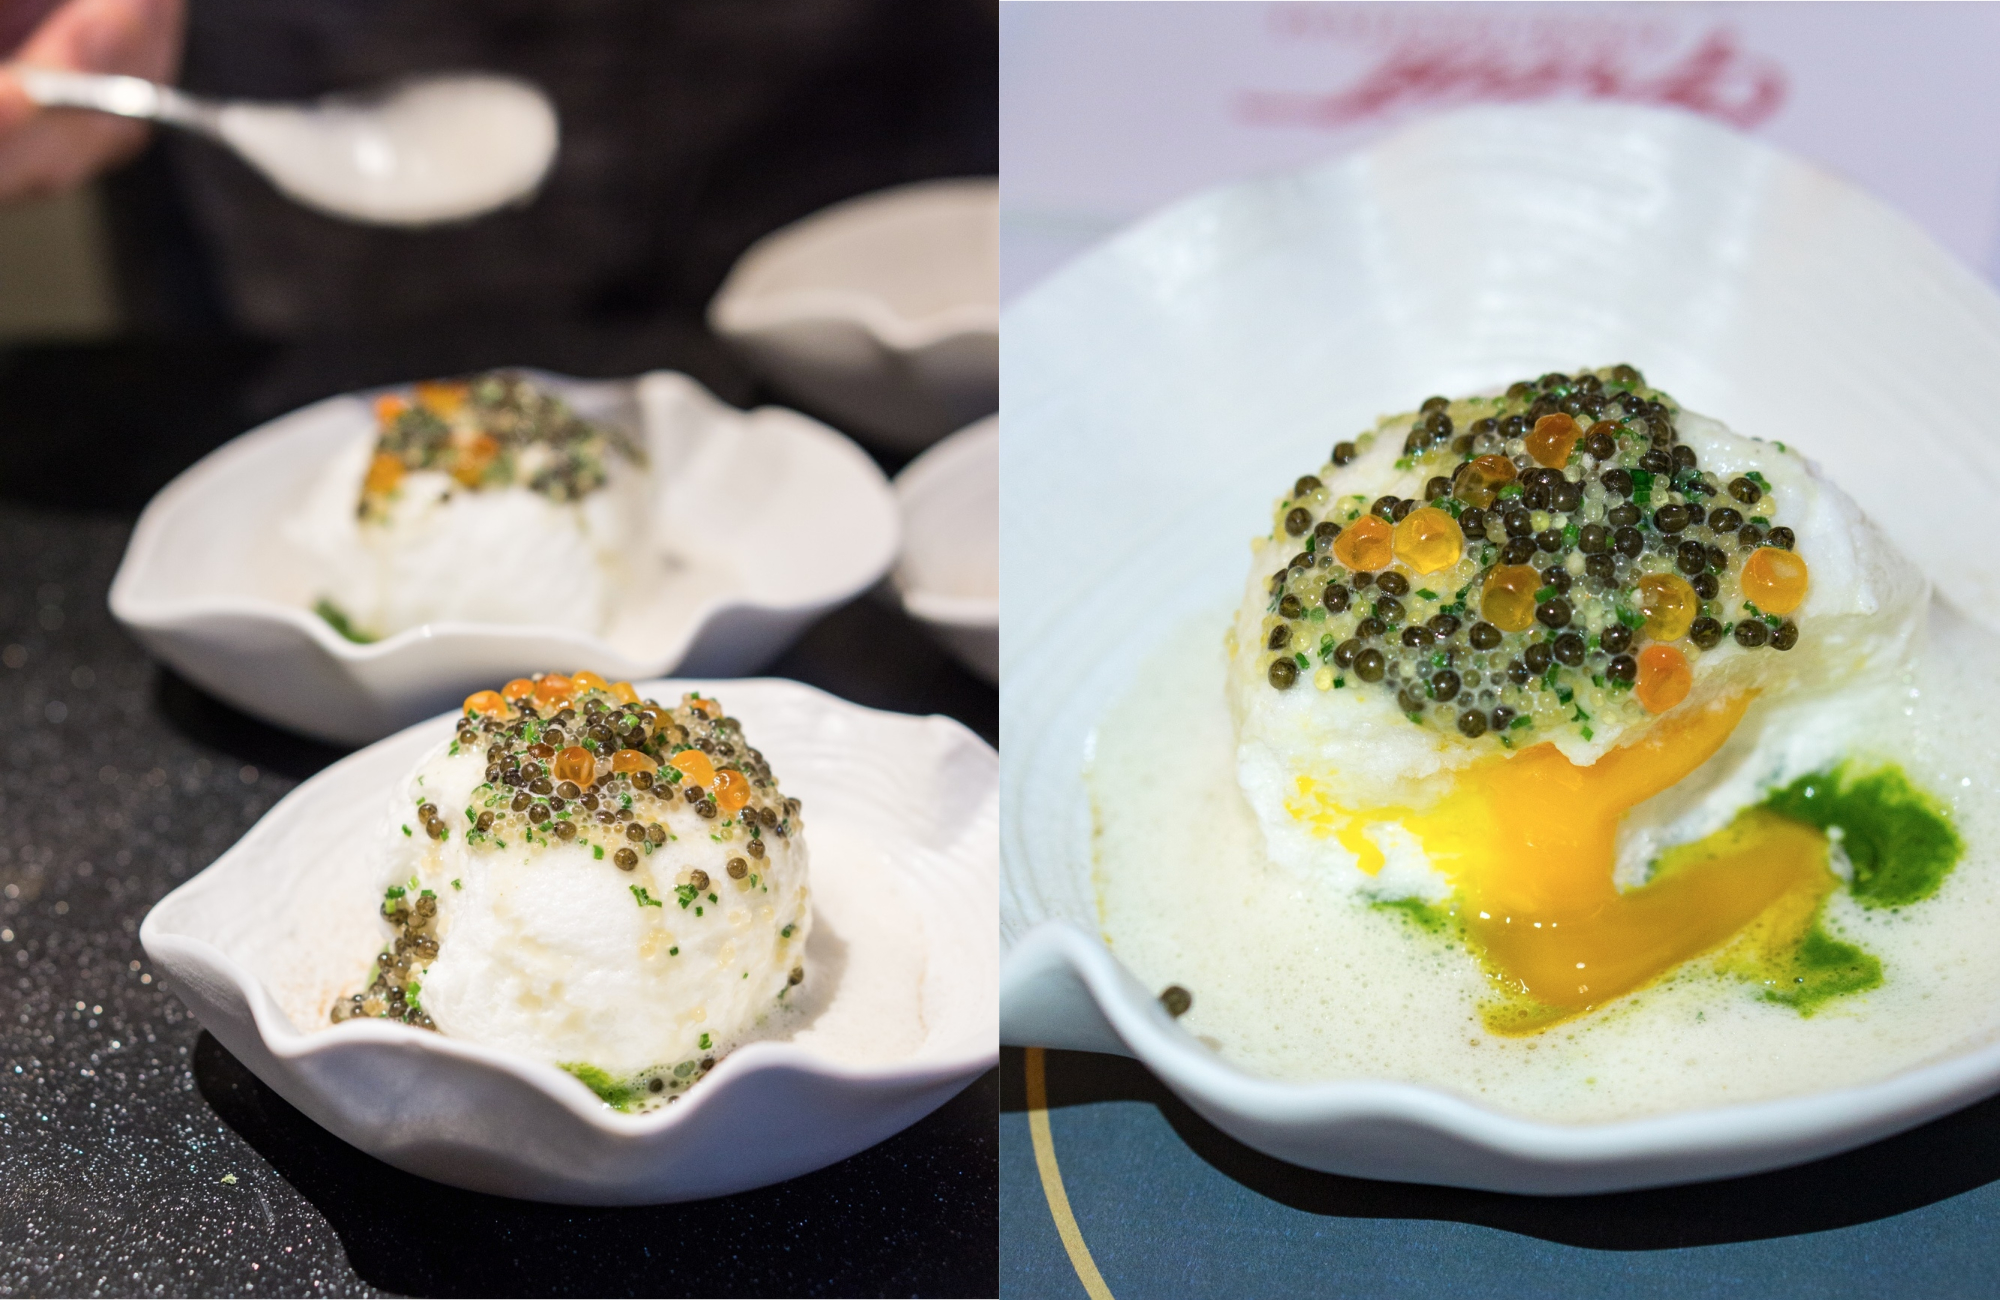 Soufflated-Farm-Egg-from-CURATE.jpg